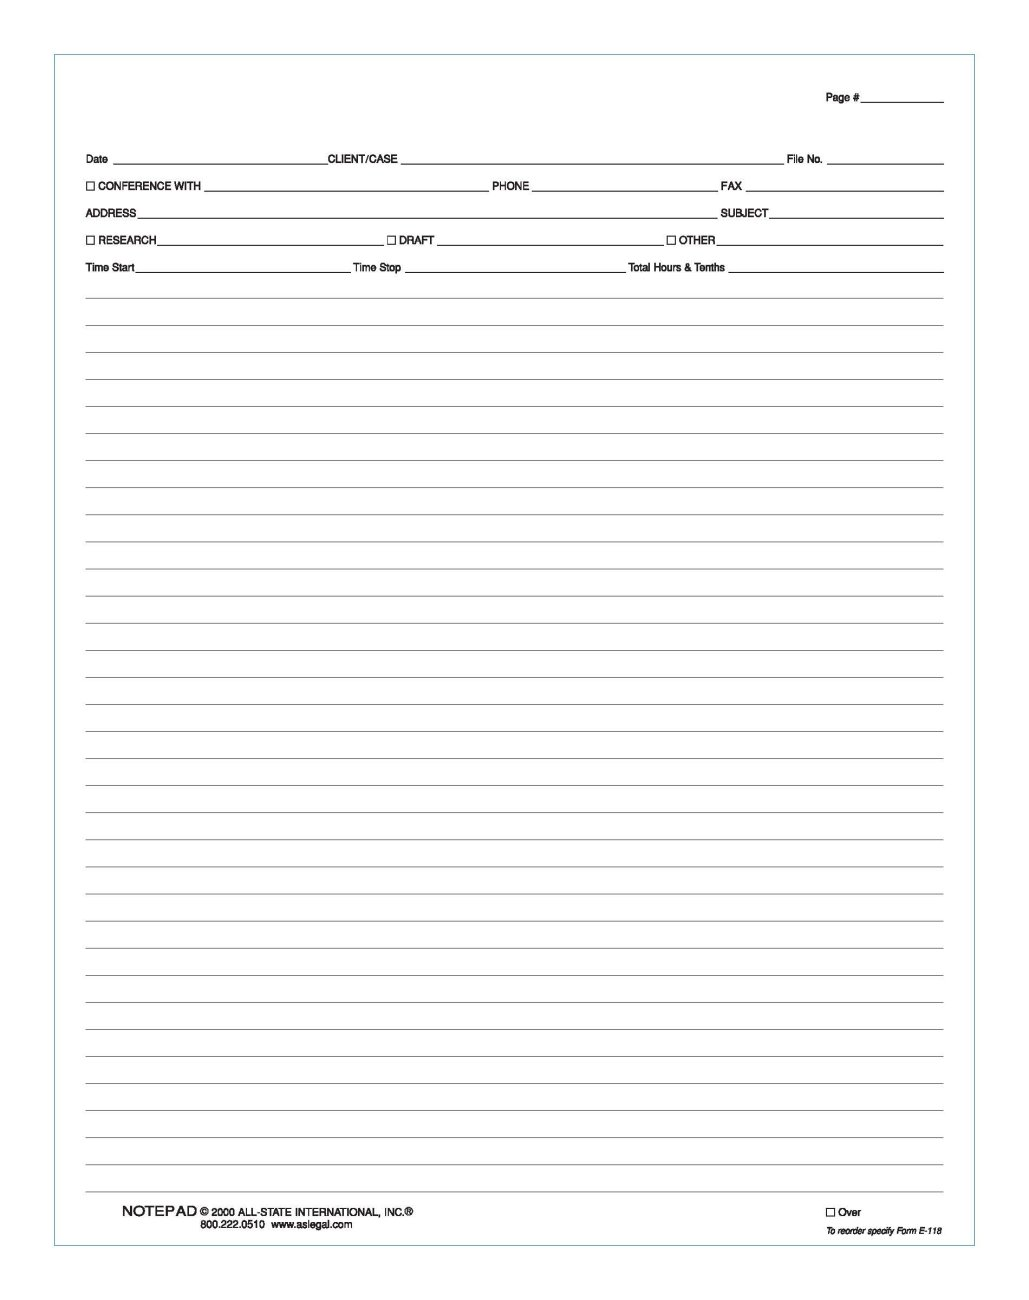 "Conference Note Pad 8 1/2"" x 11"", Conference Note Pad, 20 lb., White Form with Green Ink, 2 Hole Punched, 50 Sheets/Pad"